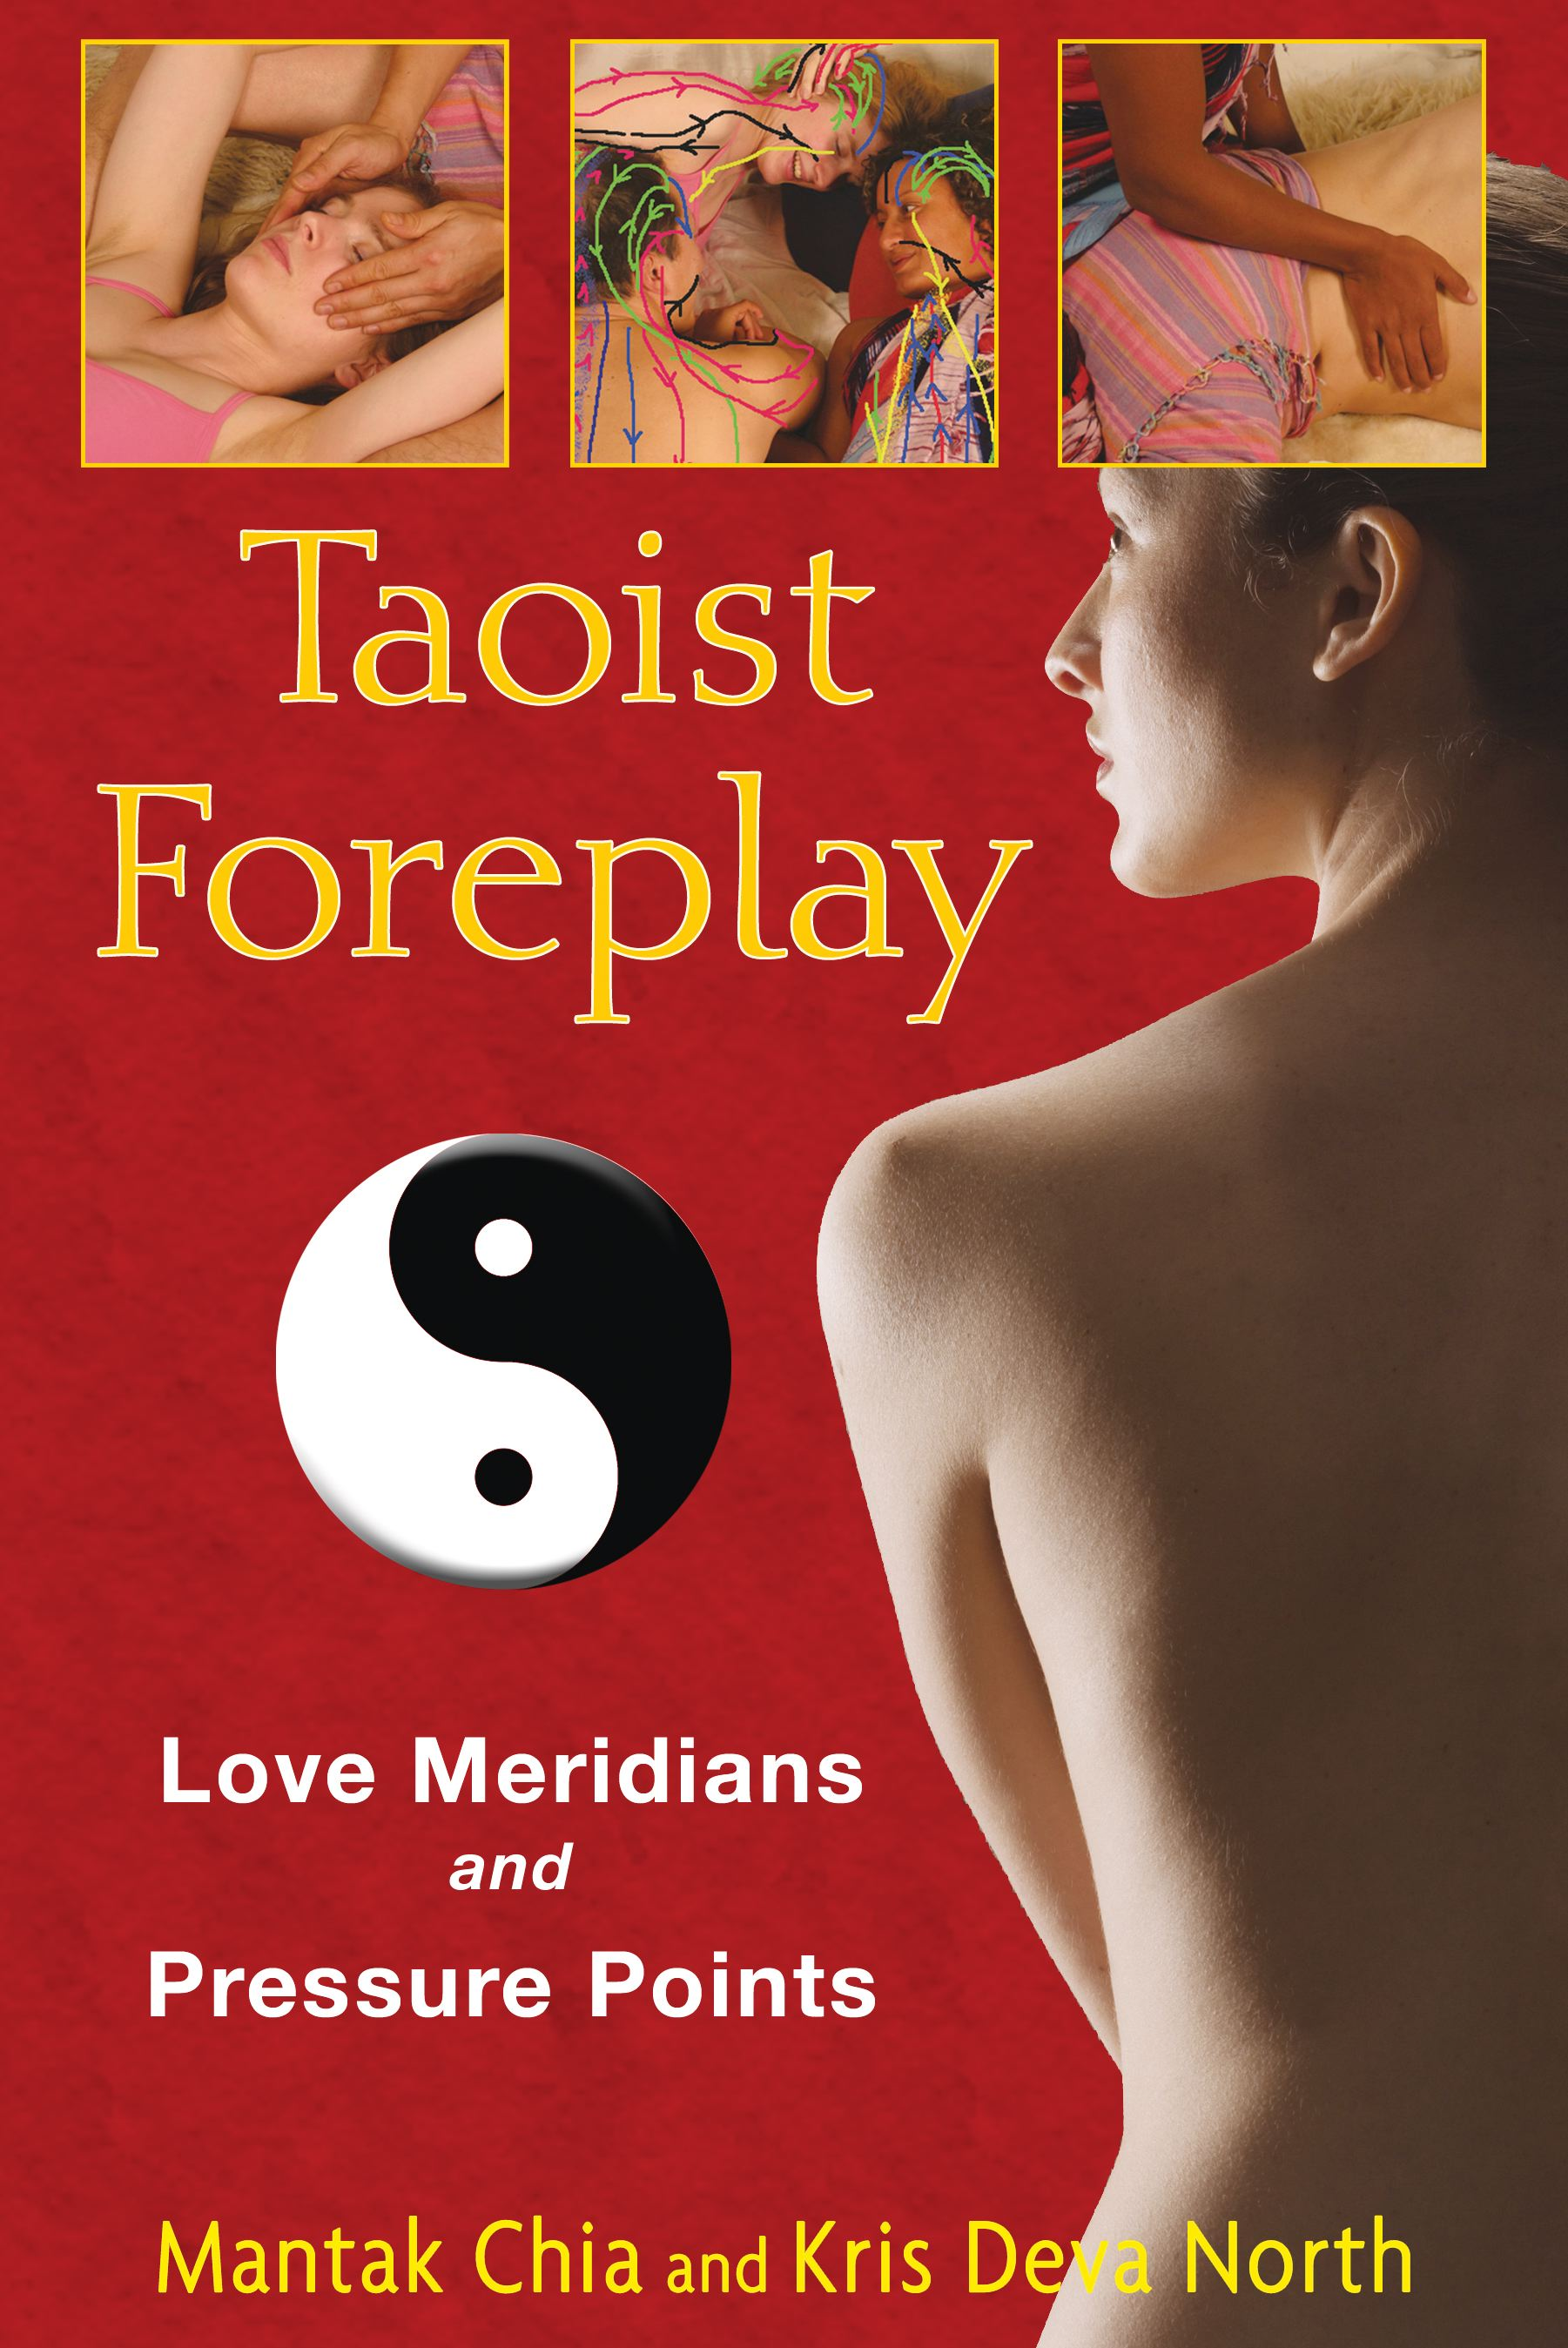 Chinese taoism and sexuality